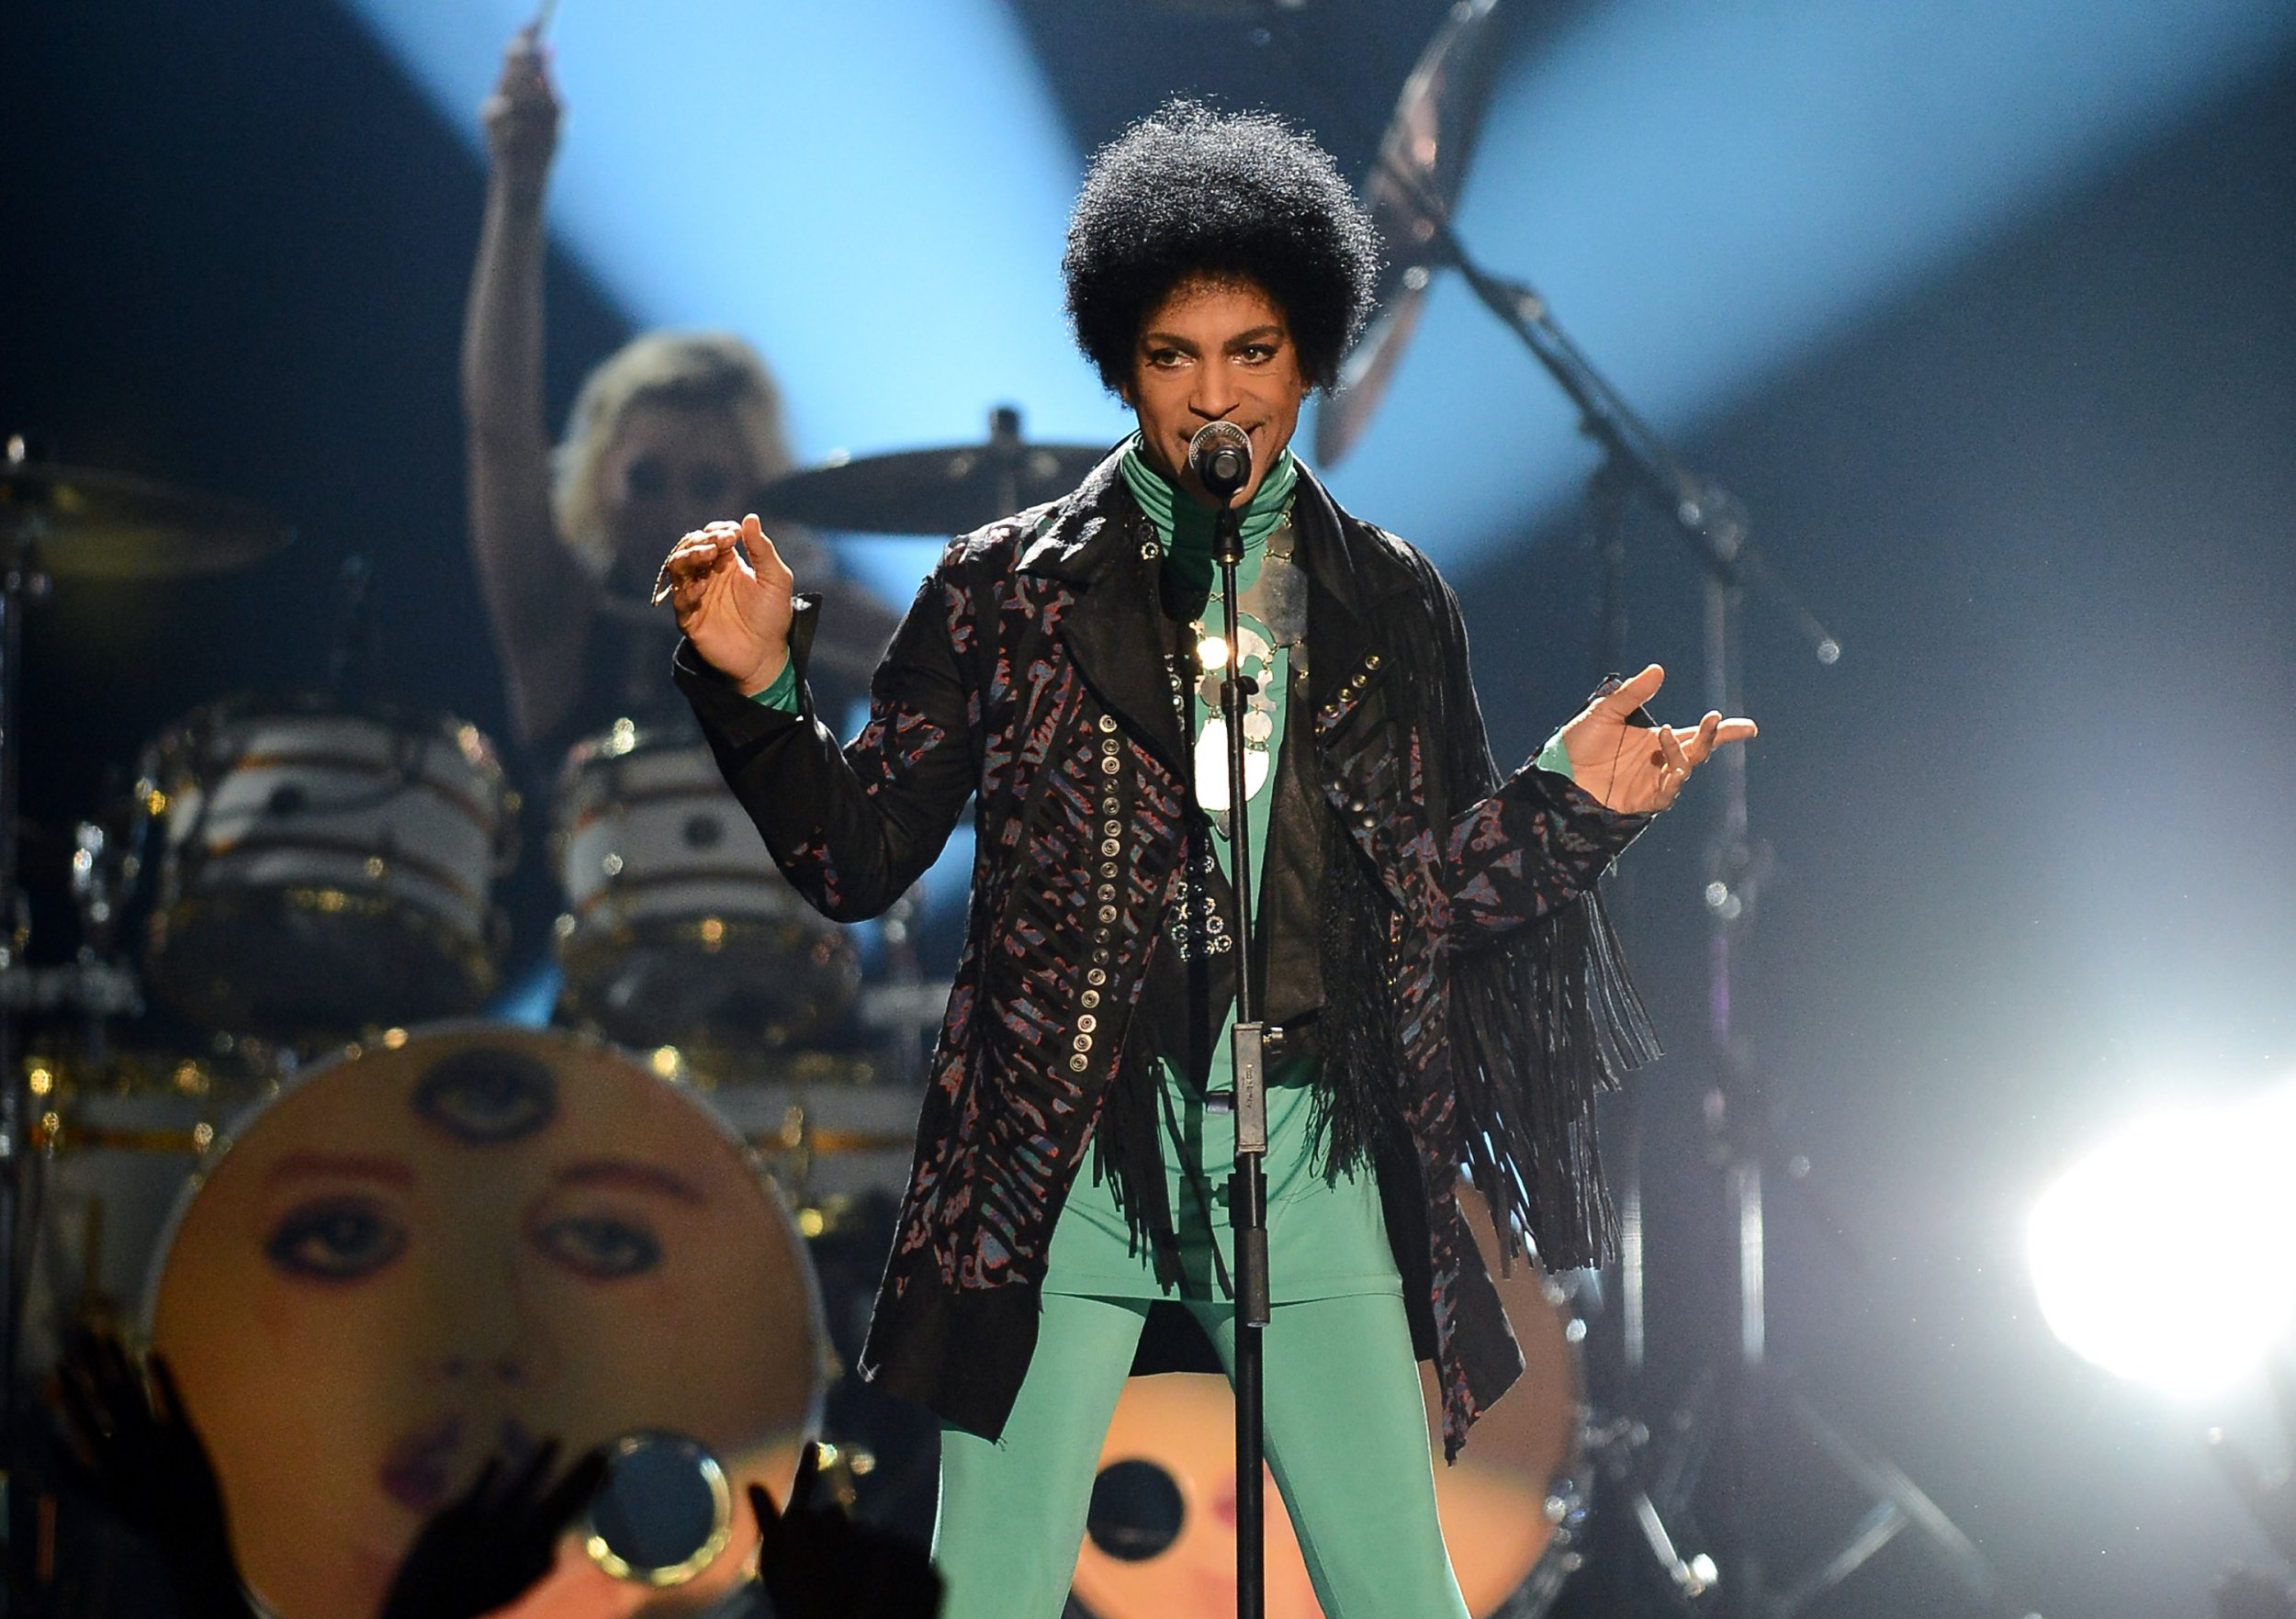 Prince performs at Billboard Awards